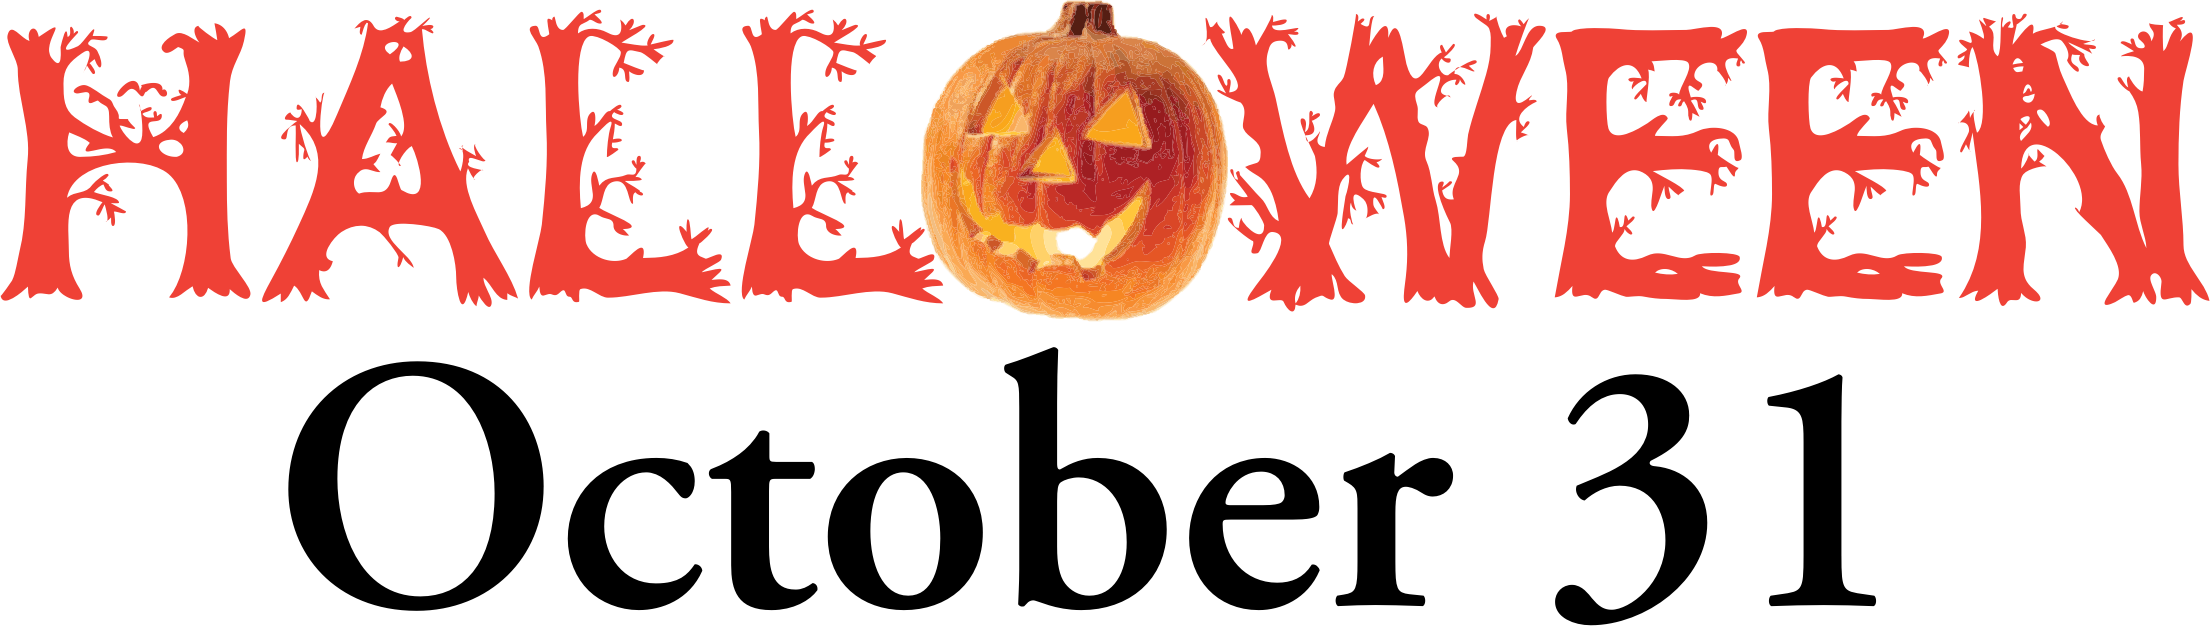 Big image png. Clipart halloween banner